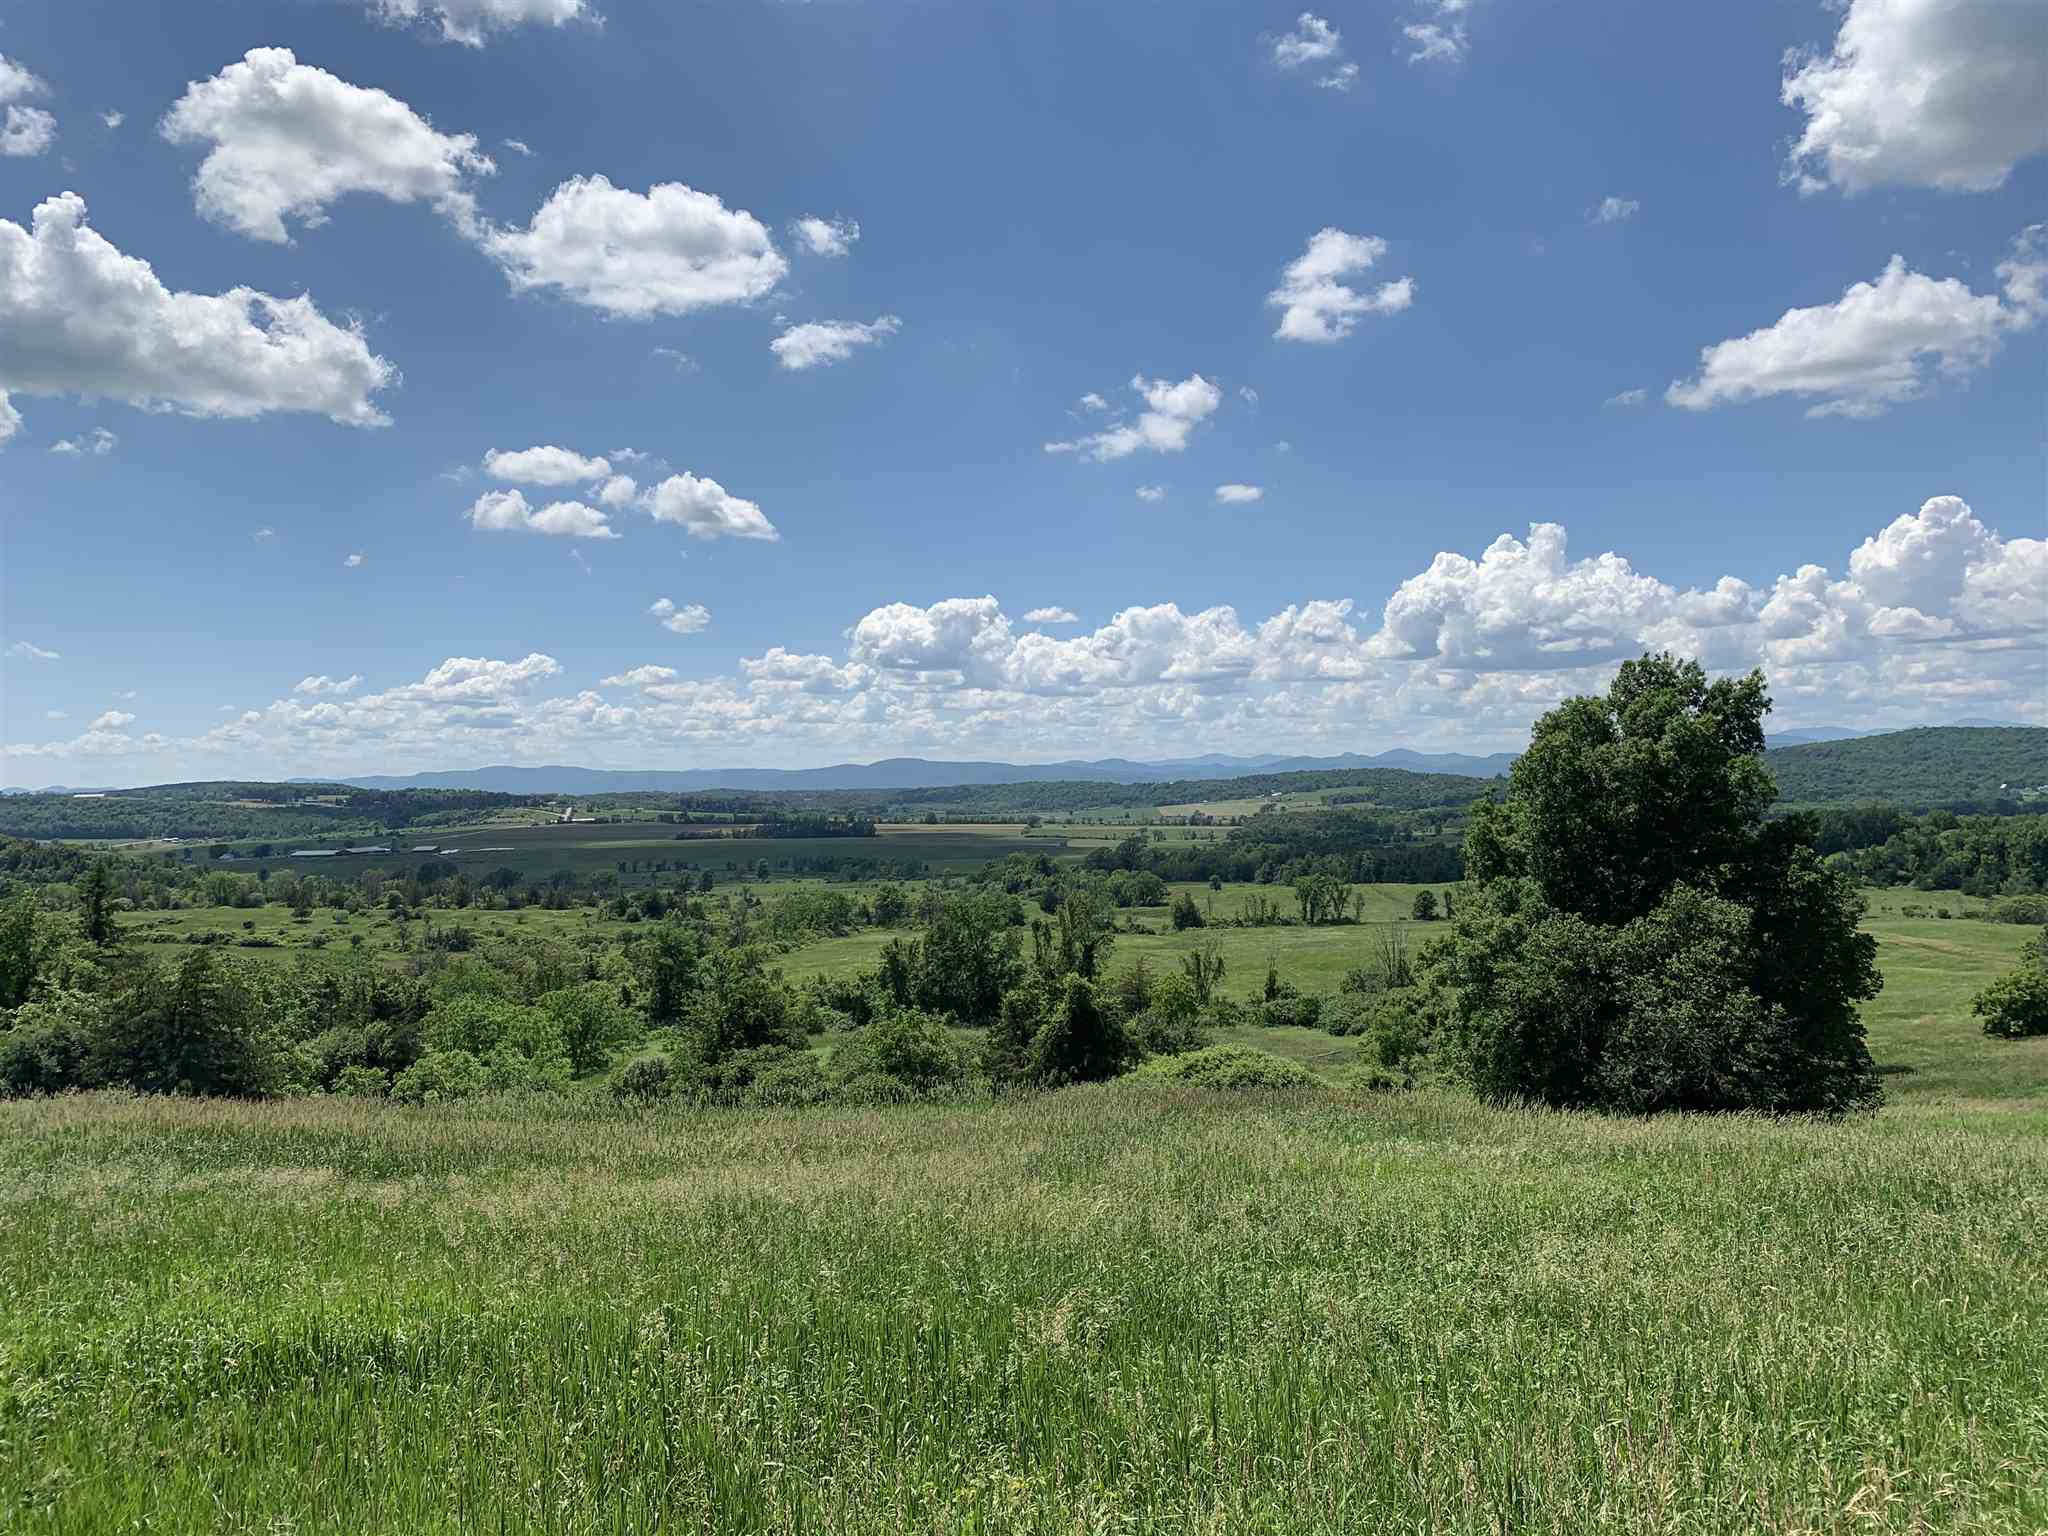 Come see this 6 lot subdivision on over 110 acres in beautiful Cornwall/Bridport Vermont!  The subdivision is fully approved with all necessary permits in hand.   Very generous lots ranging from 5 to 25 acres each.  Located in a beautiful, quiet area only 10 minutes to the gorgeous Middlebury College campus, golfing, Lake Dunmore, and plenty of local amenities!  Don't miss the opportunity to buy this subdivision package!